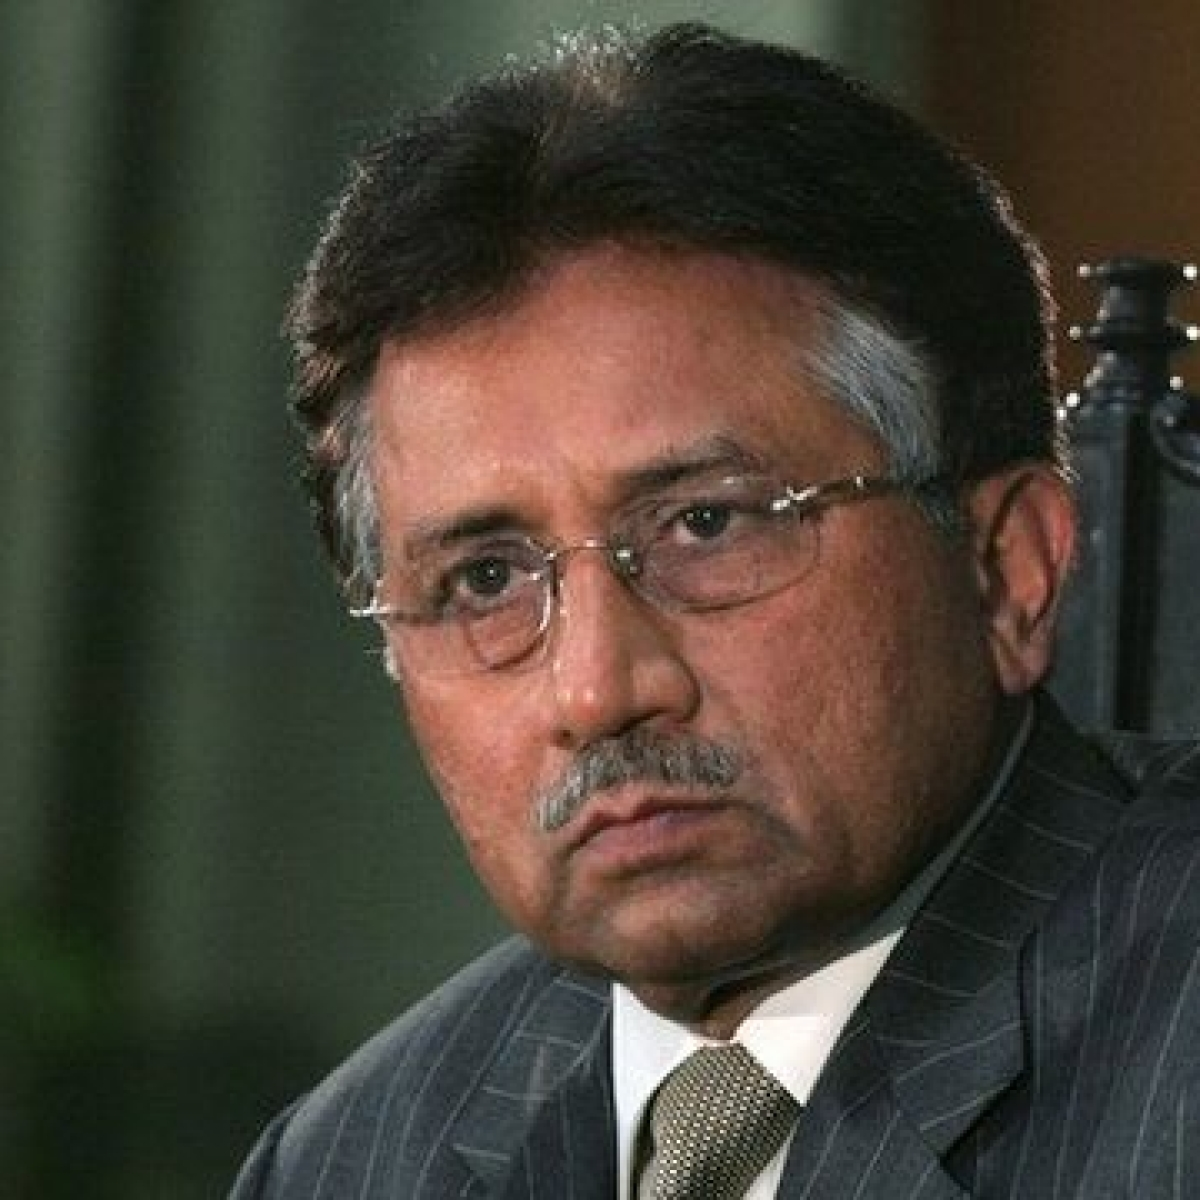 Pakistan's special court hands death penalty to former president Pervez Musharraf